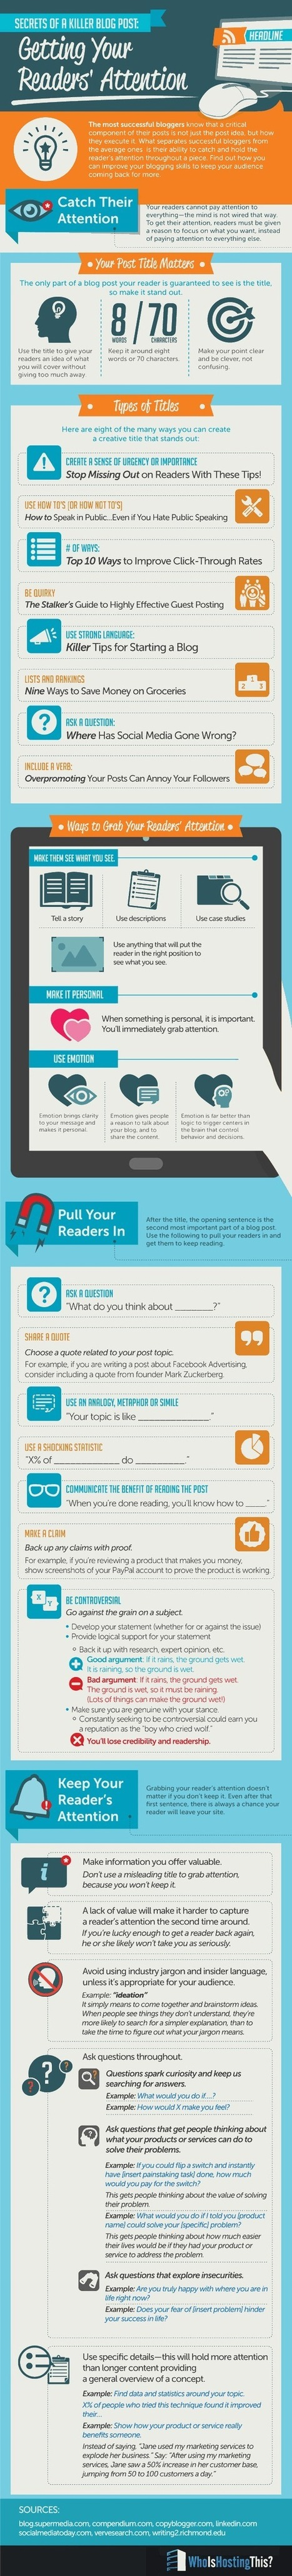 The Secrets to Writing an Attention-Grabbing Blog Post [Infographic] | Wordpress Web Design | Scoop.it